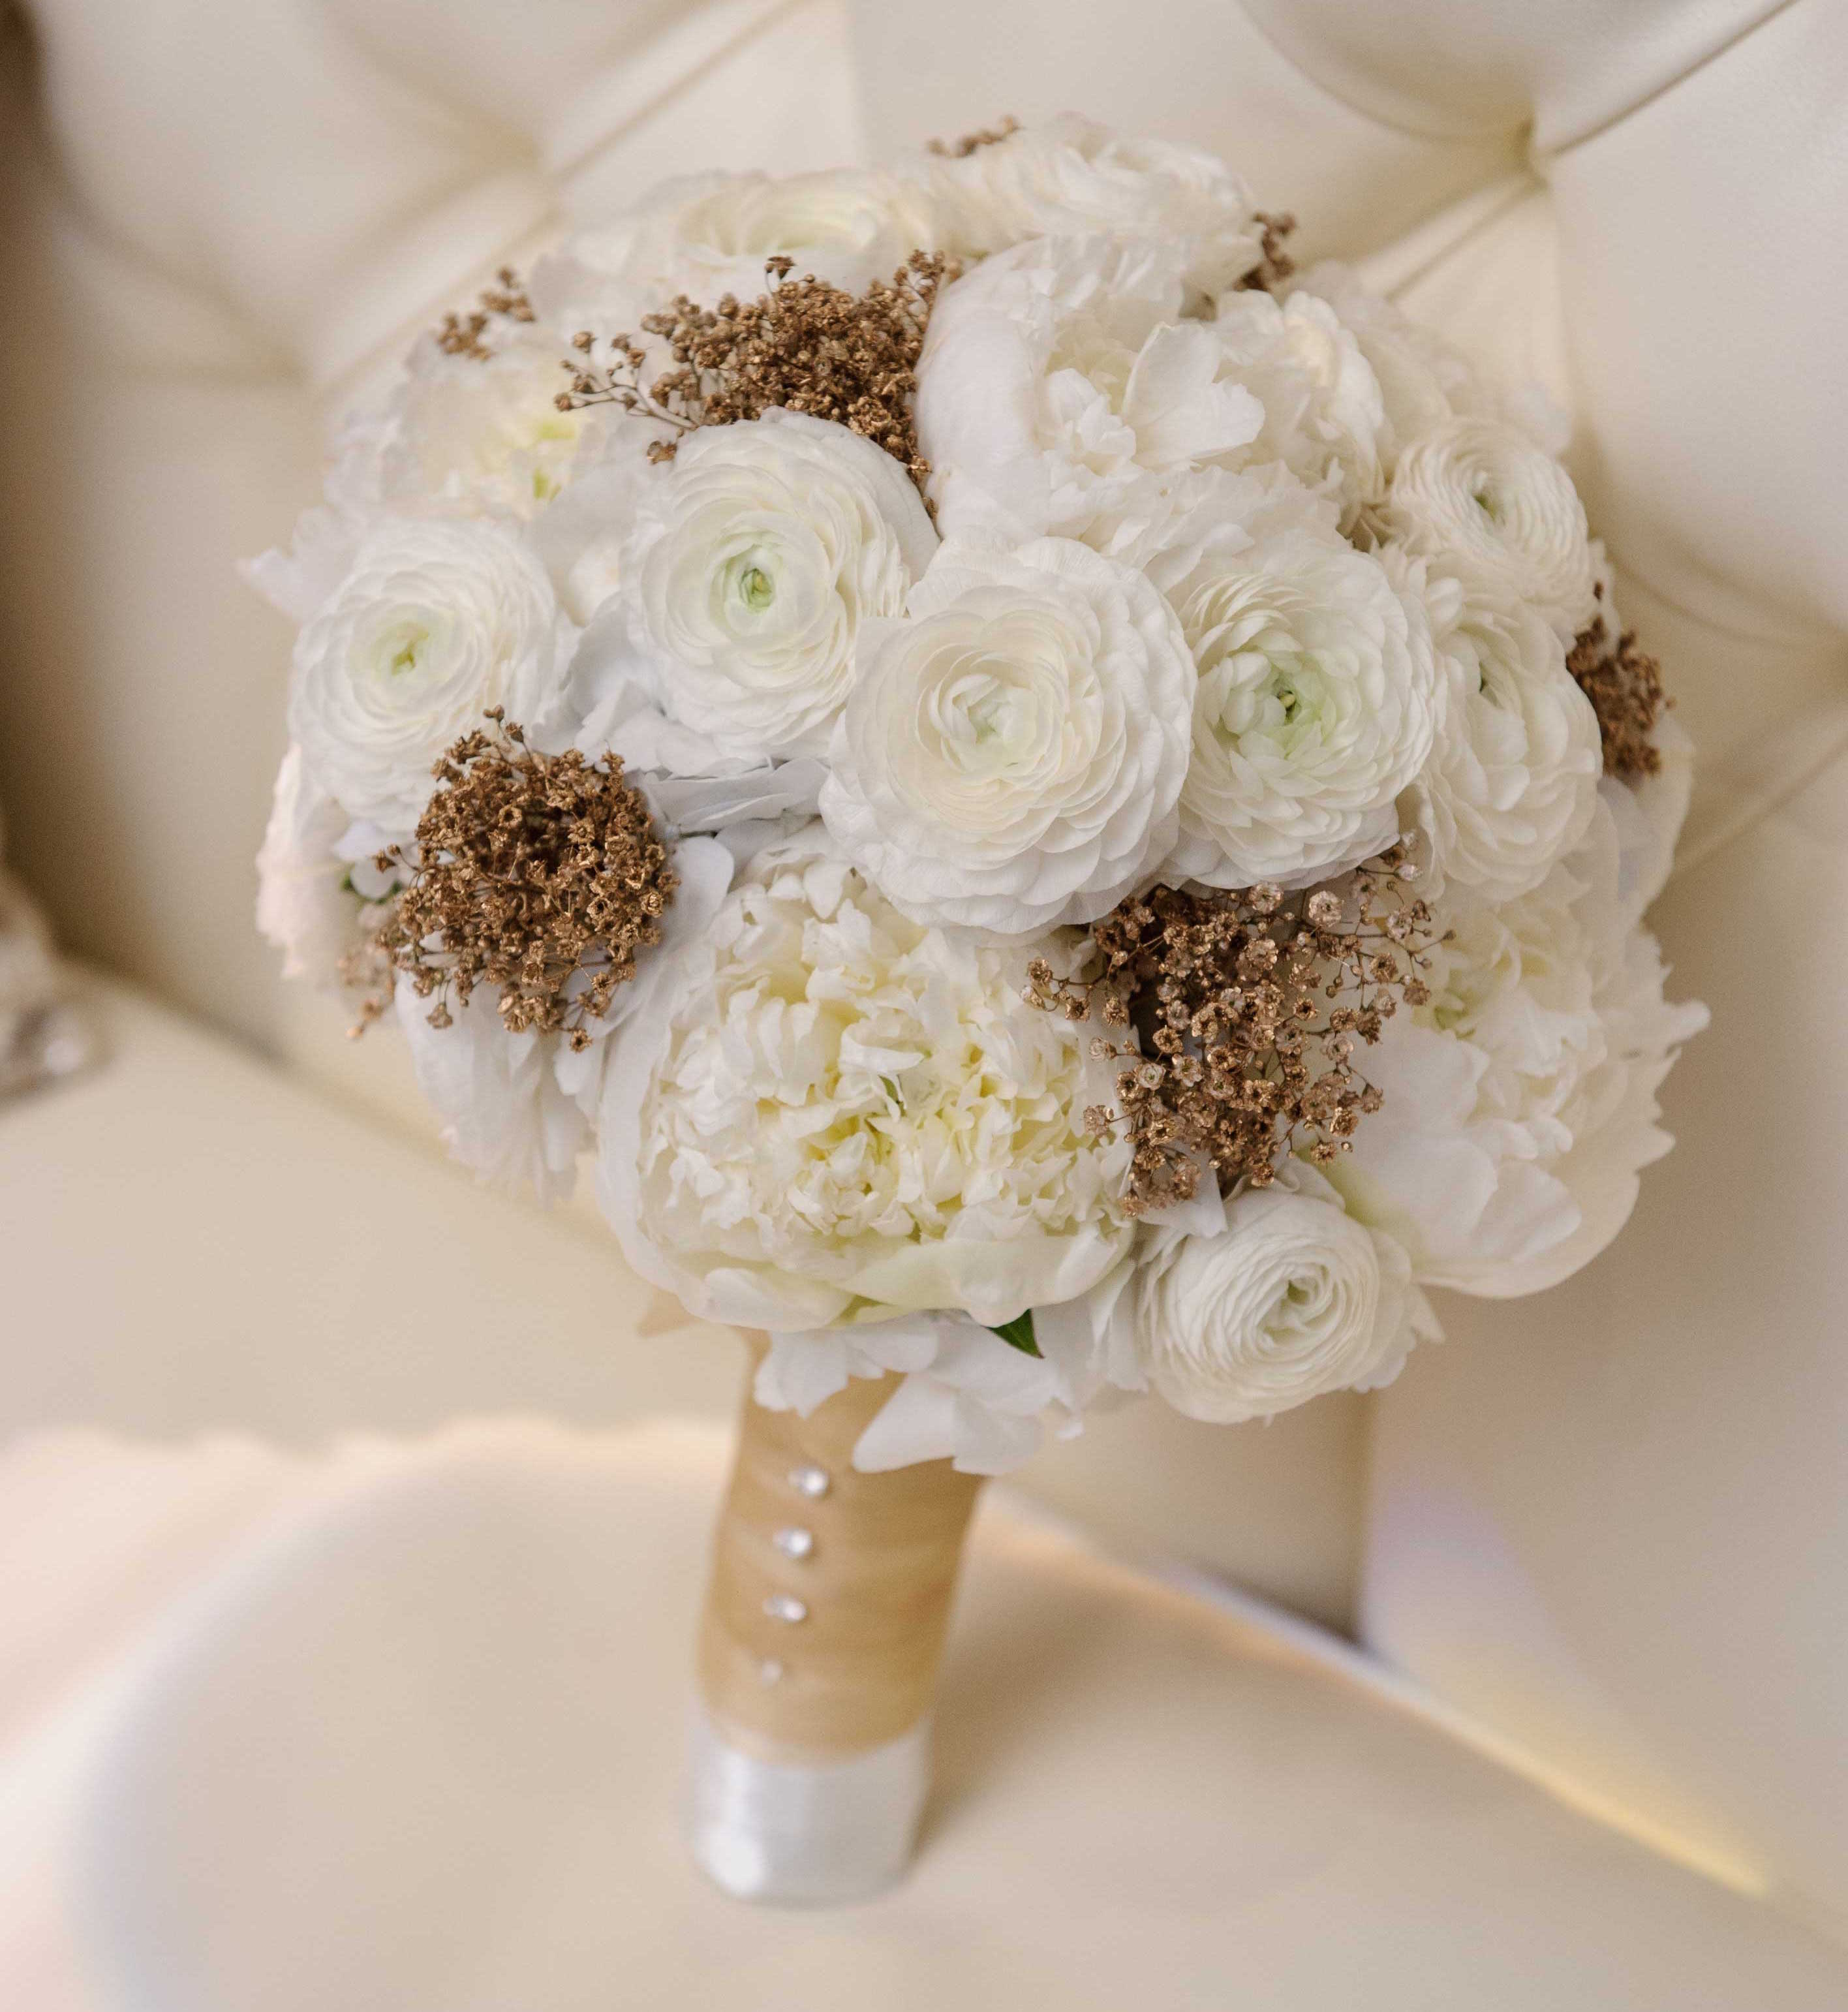 Winter wedding bouquet ideas white peony white ranunculus gold baby's breath